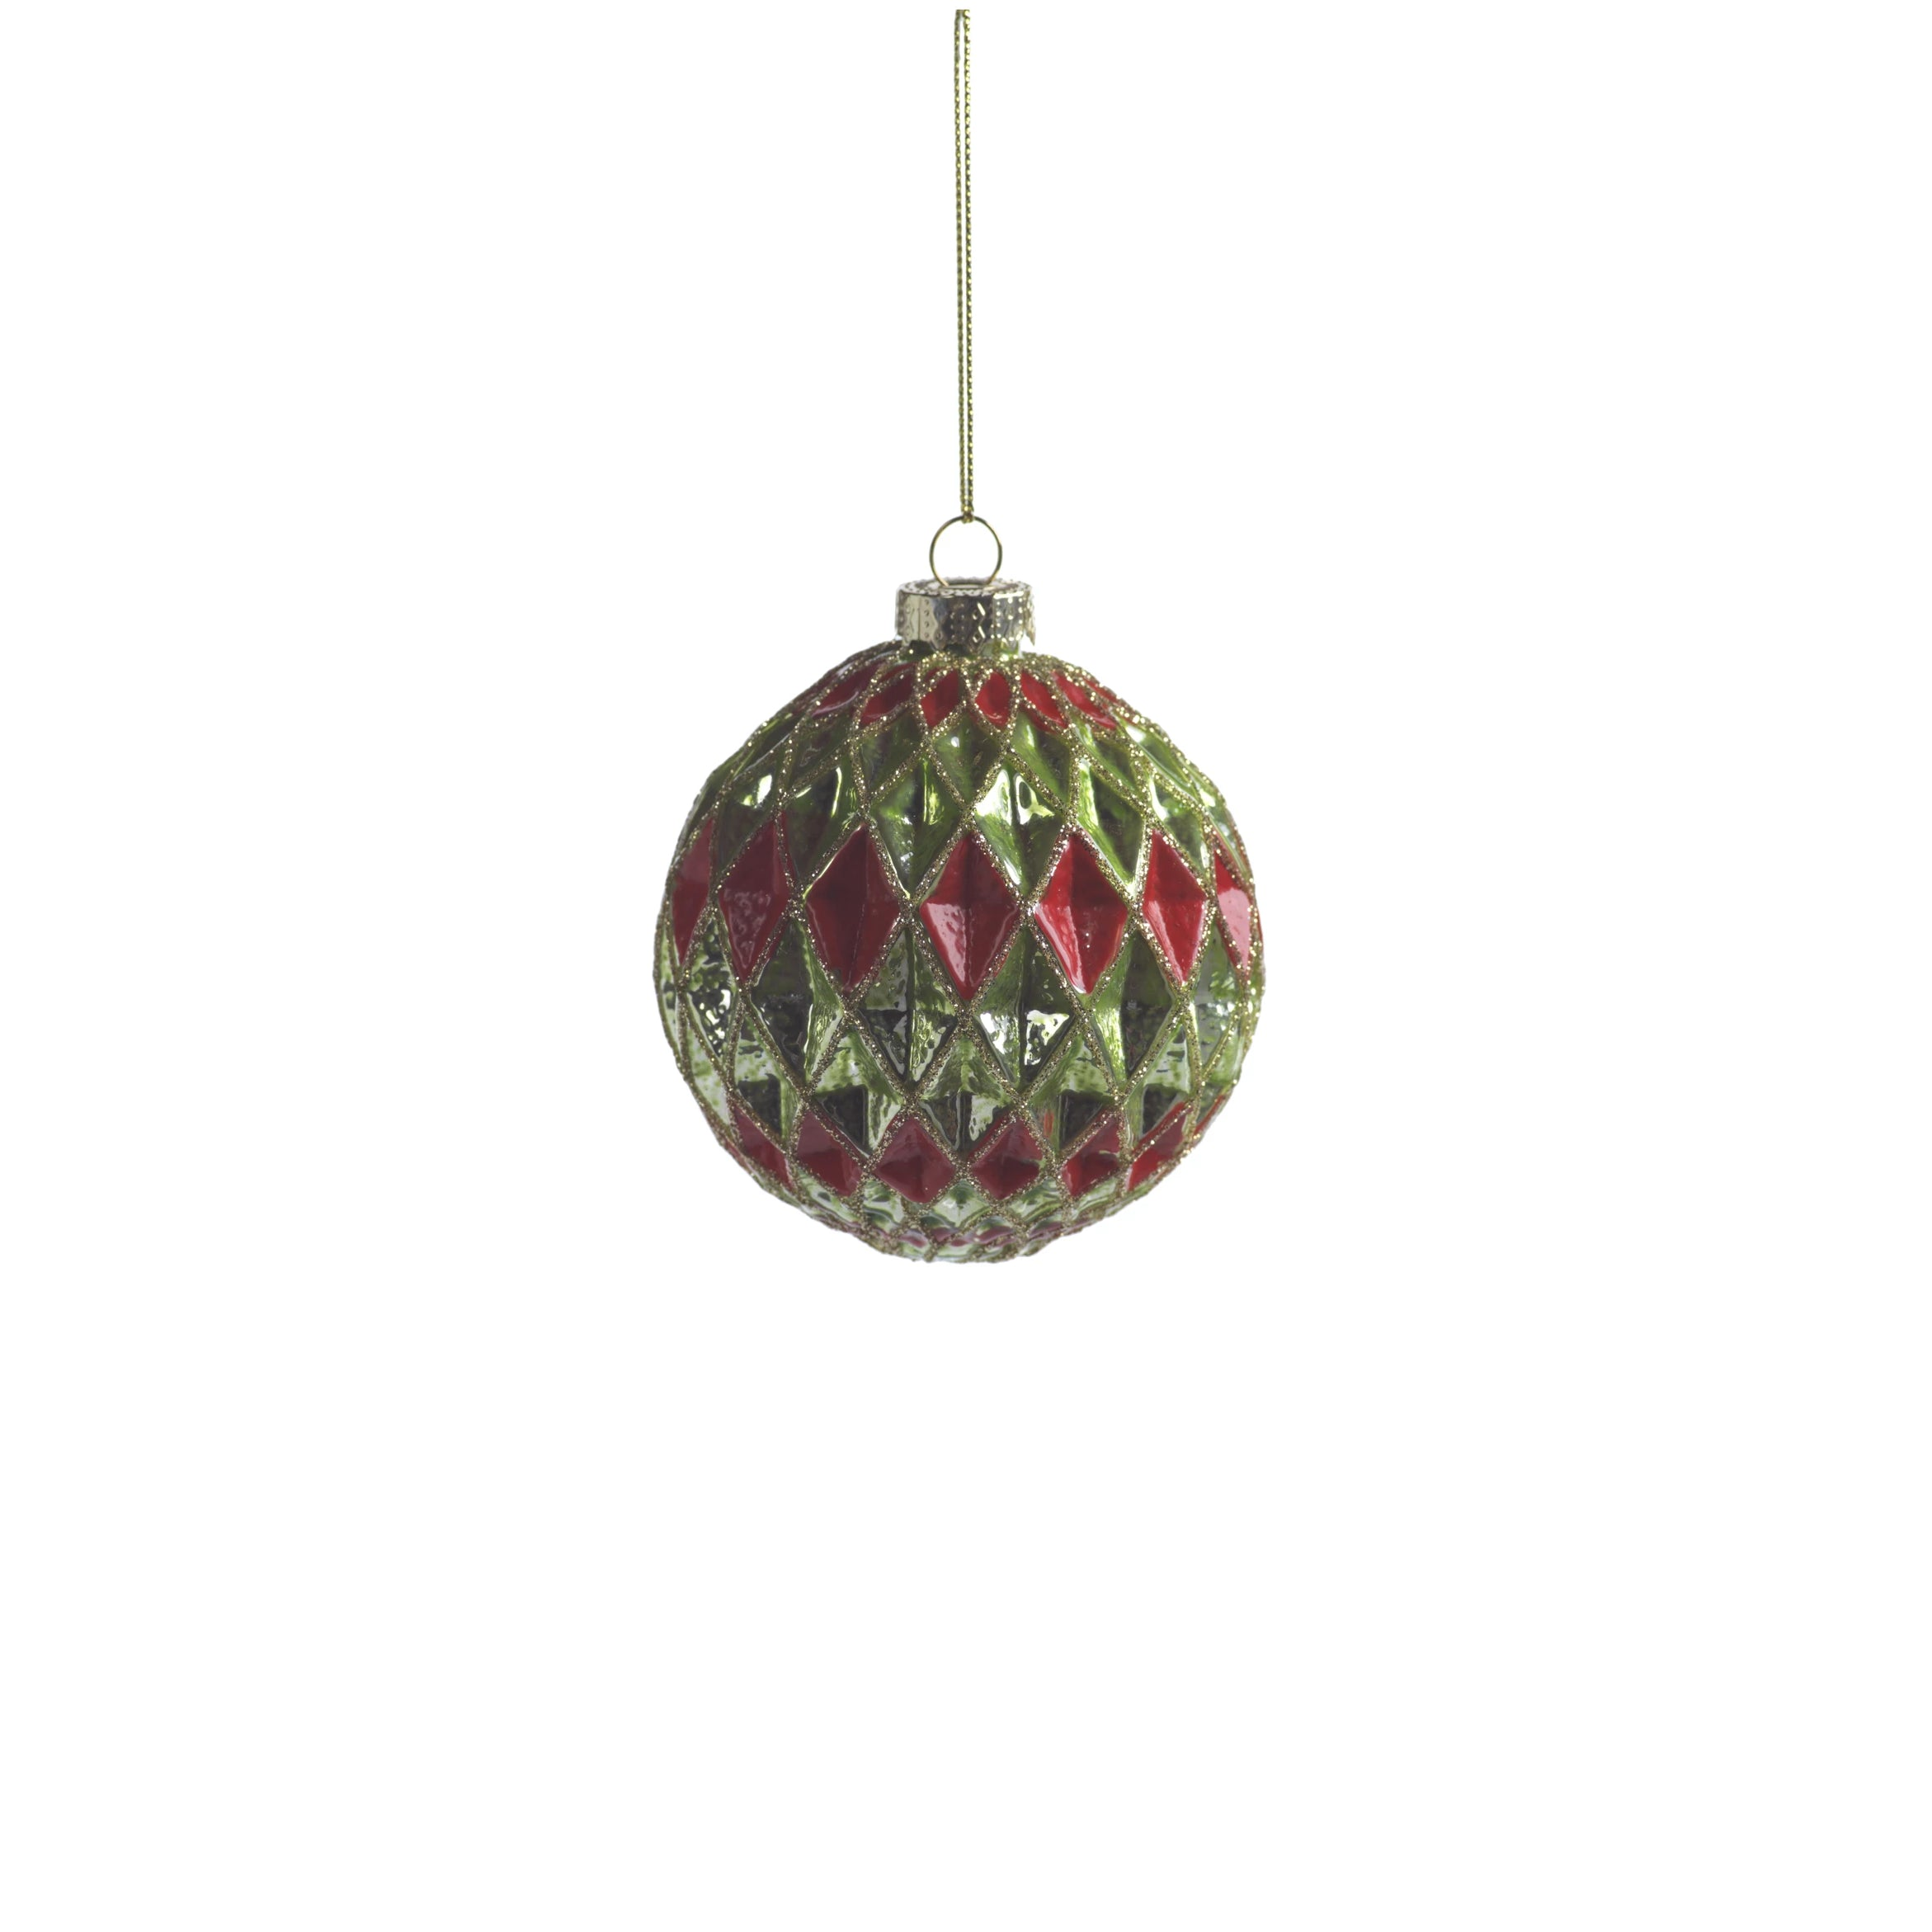 Carnival Ball Ornament - Green & Red - CARLYLE AVENUE